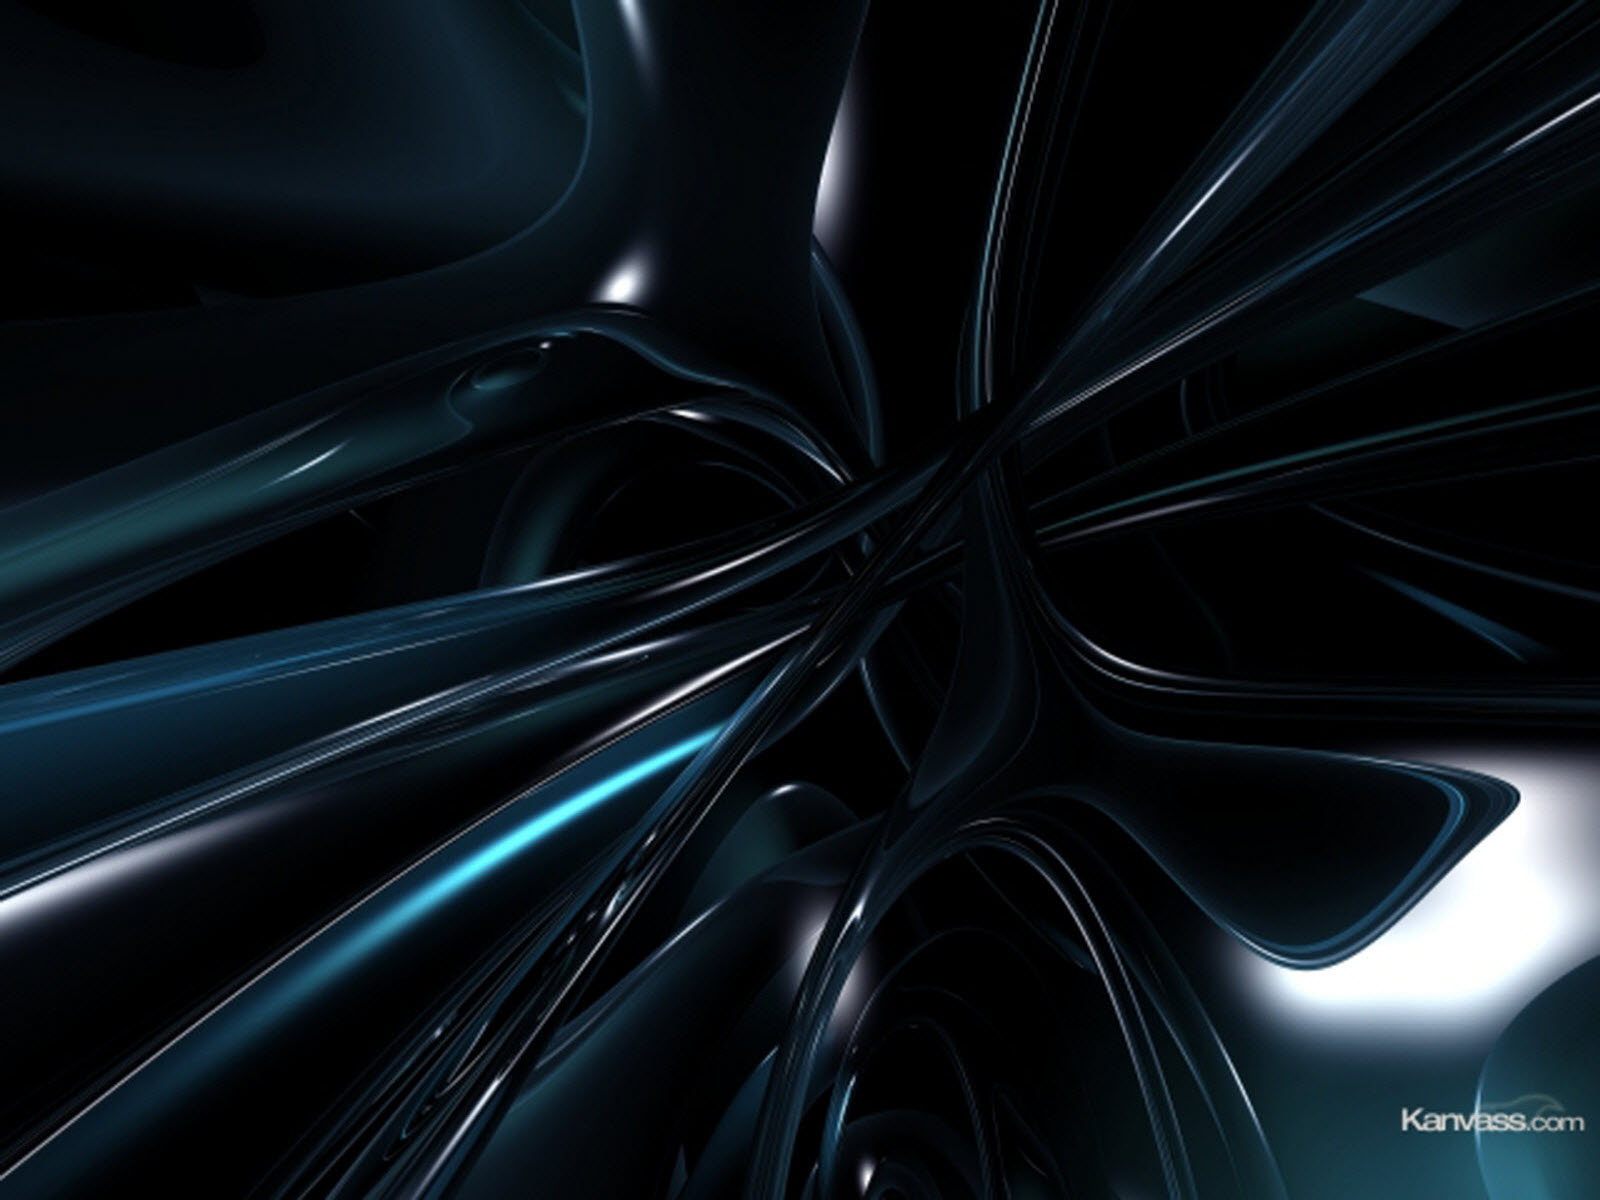 Abstract 3D Wallpapers Desktop Backgrounds Computer Wallpapers 1600x1200